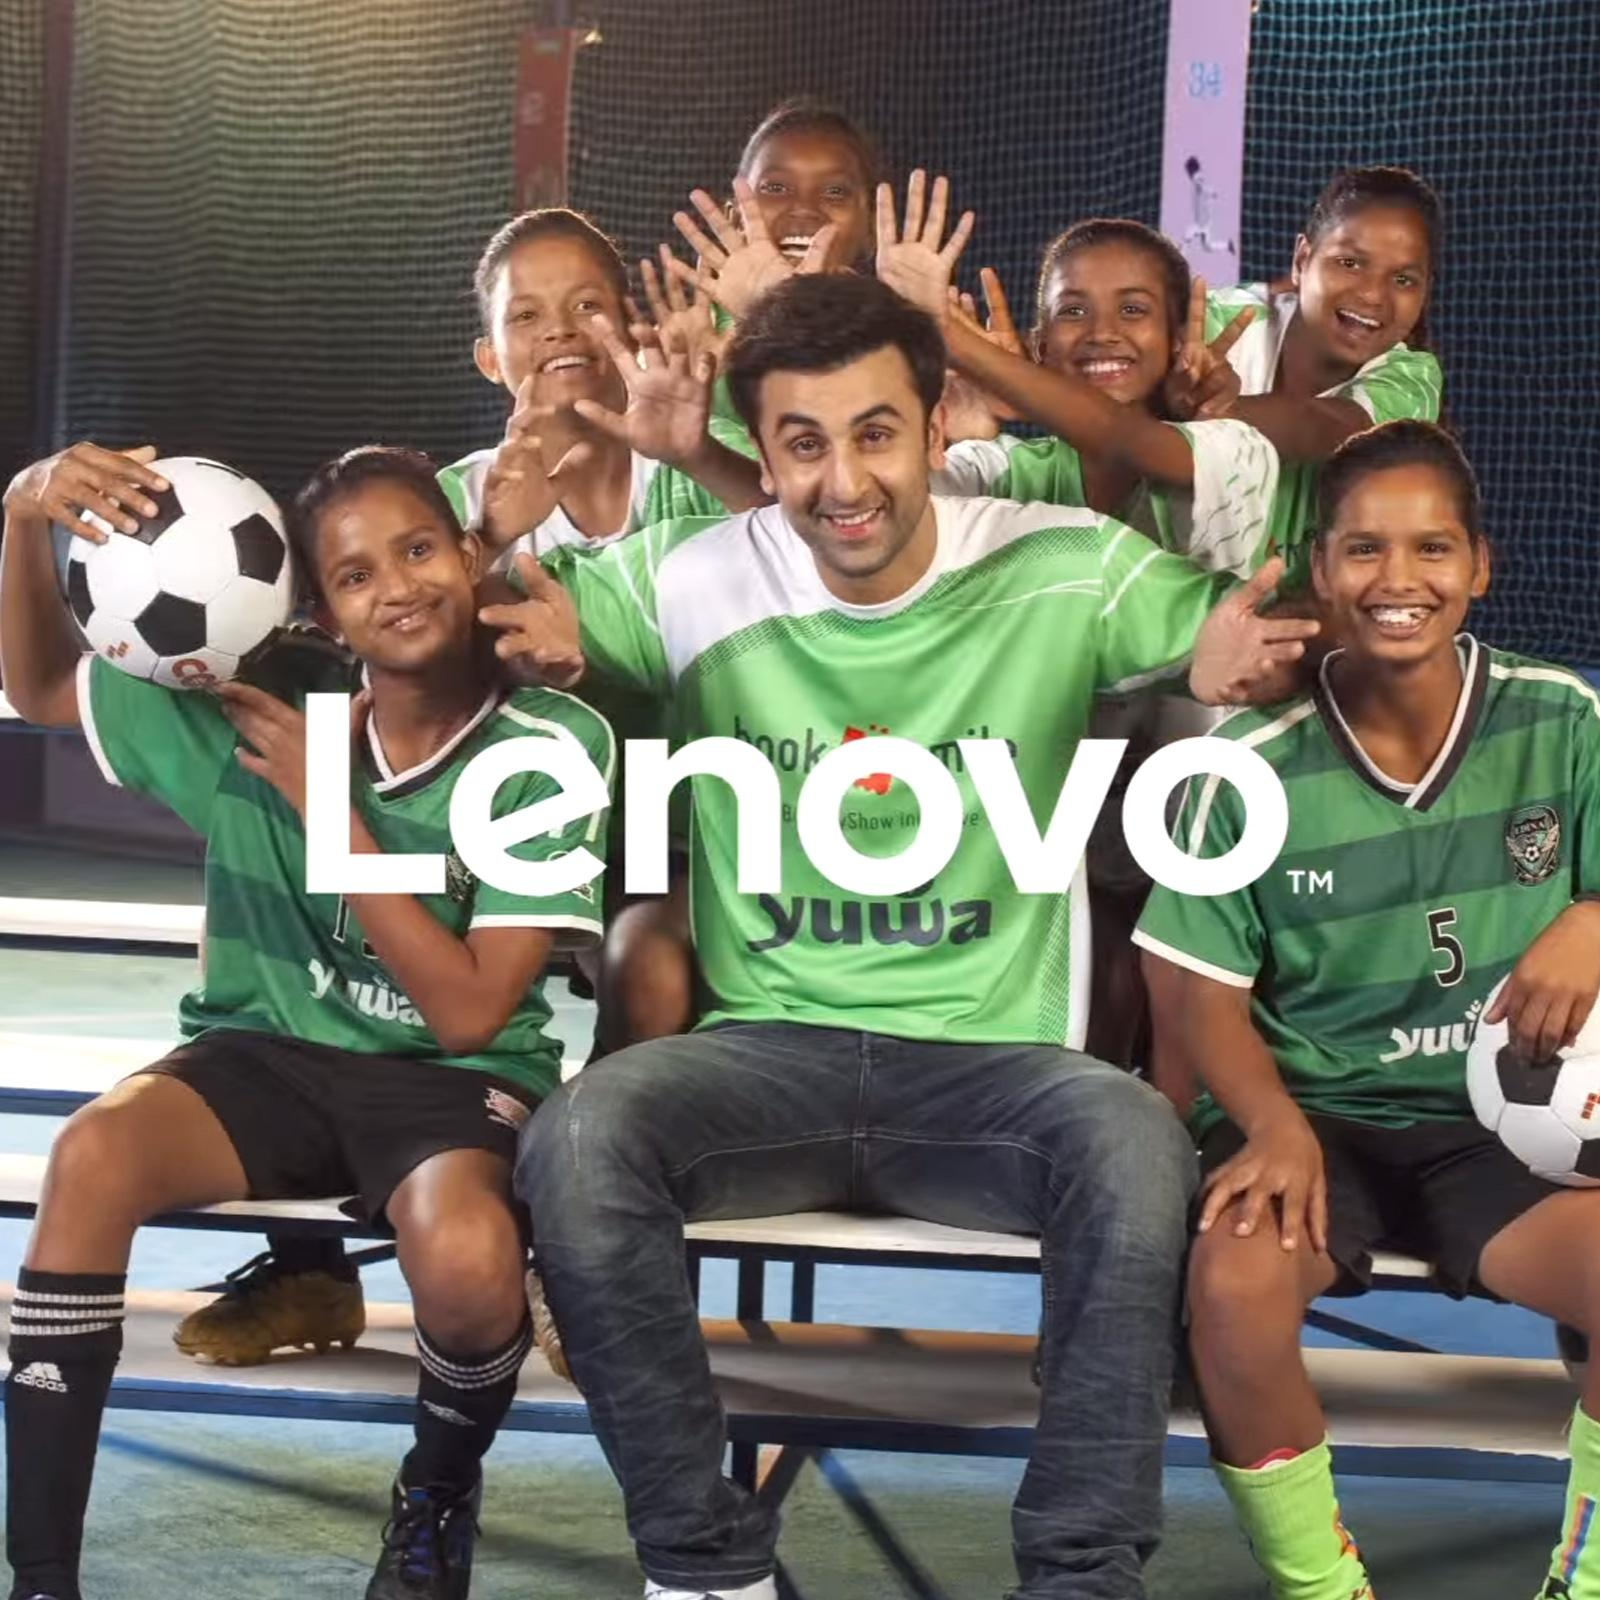 https://www.indiantelevision.com/sites/default/files/styles/smartcrop_800x800/public/images/tv-images/2016/07/20/lenovo%20GirlsWithGoals.jpg?itok=0ebxDVYr